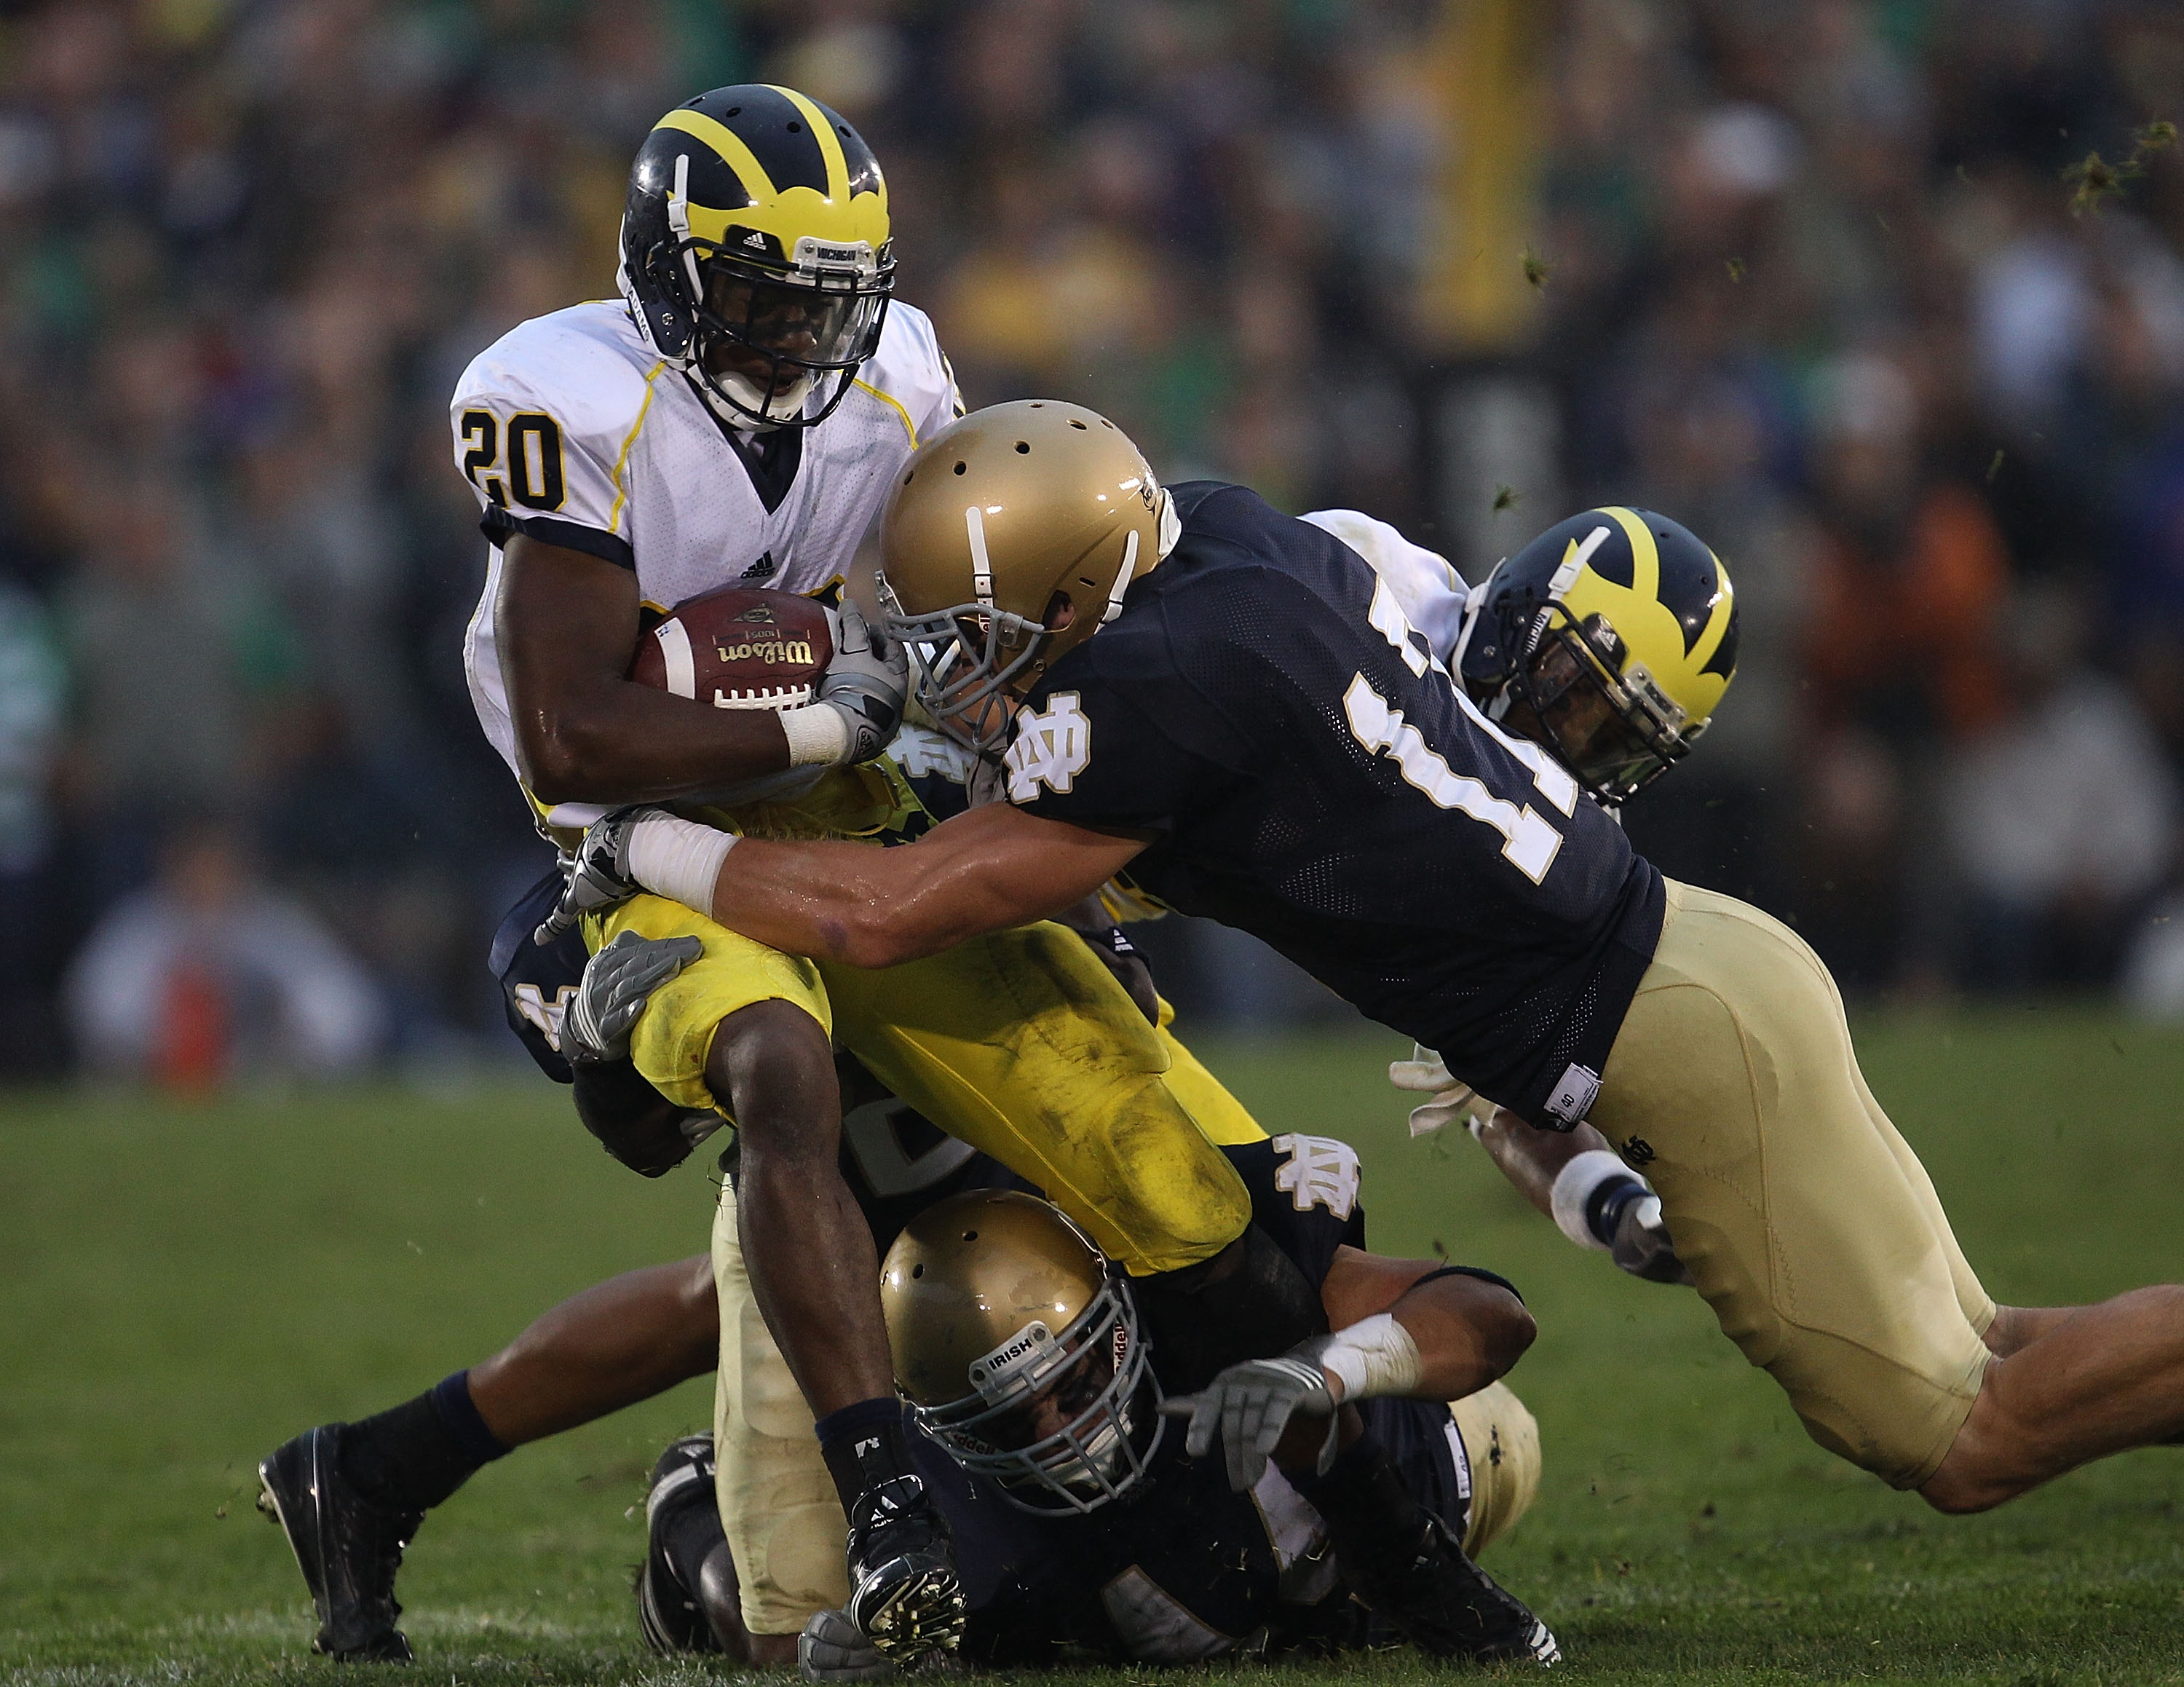 SOUTH BEND, IN - SEPTEMBER 11: Michael Shaw #20 of the Michigan Wolverines is tackled by Carlo Calabrese #44 and Zeke Motta #17 of the Notre Dame Fighting Irish at Notre Dame Stadium on September 11, 2010 in South Bend, Indiana. Michigan defeated Notre Da